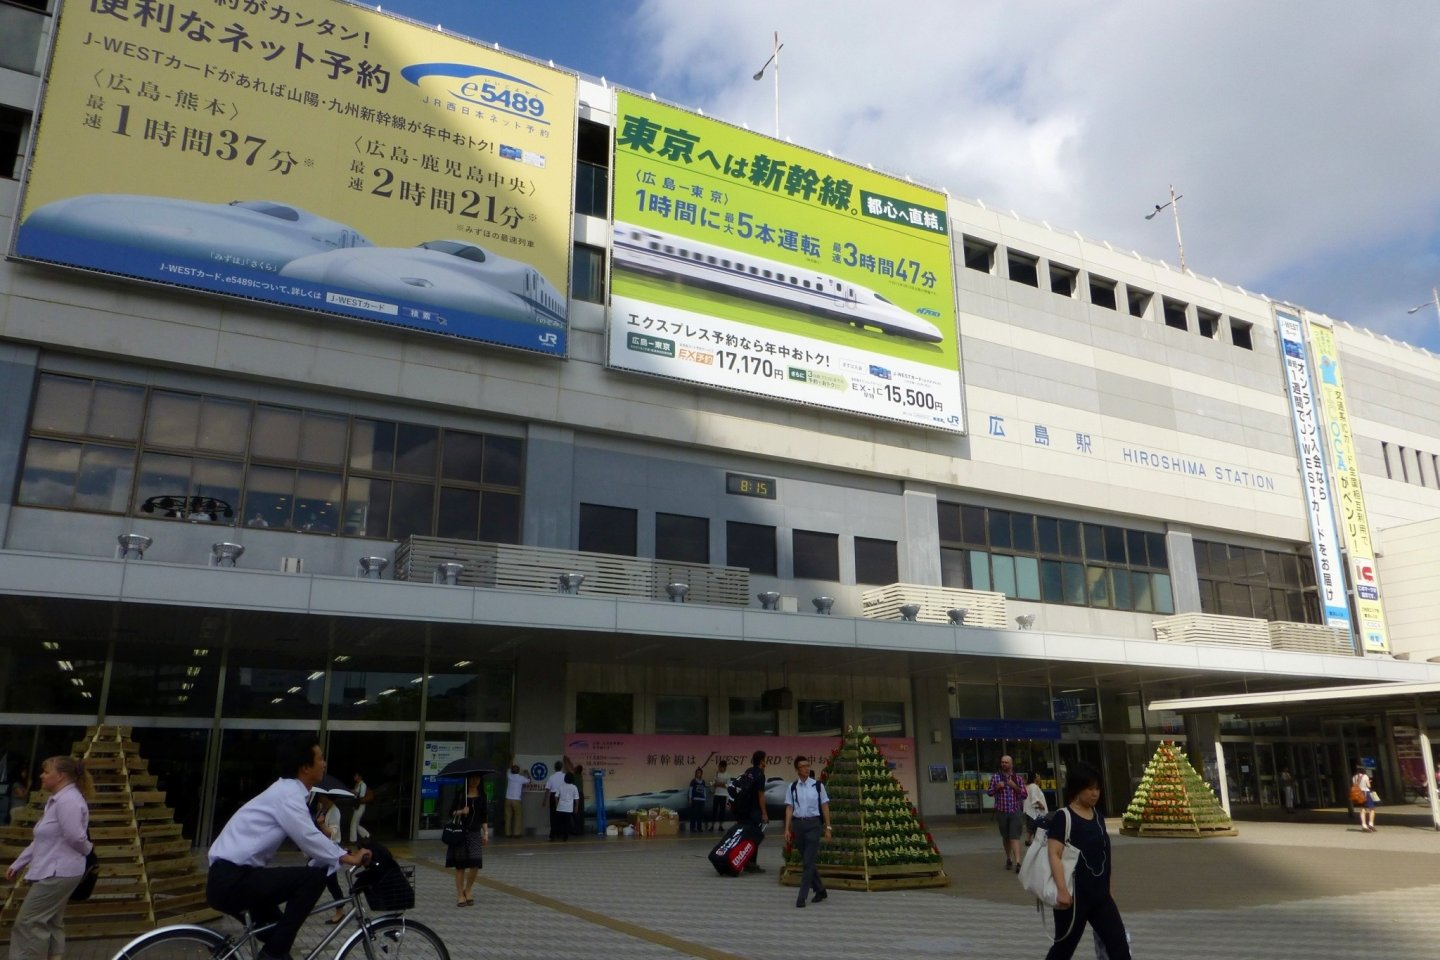 Hiroshima Station on the JR West line